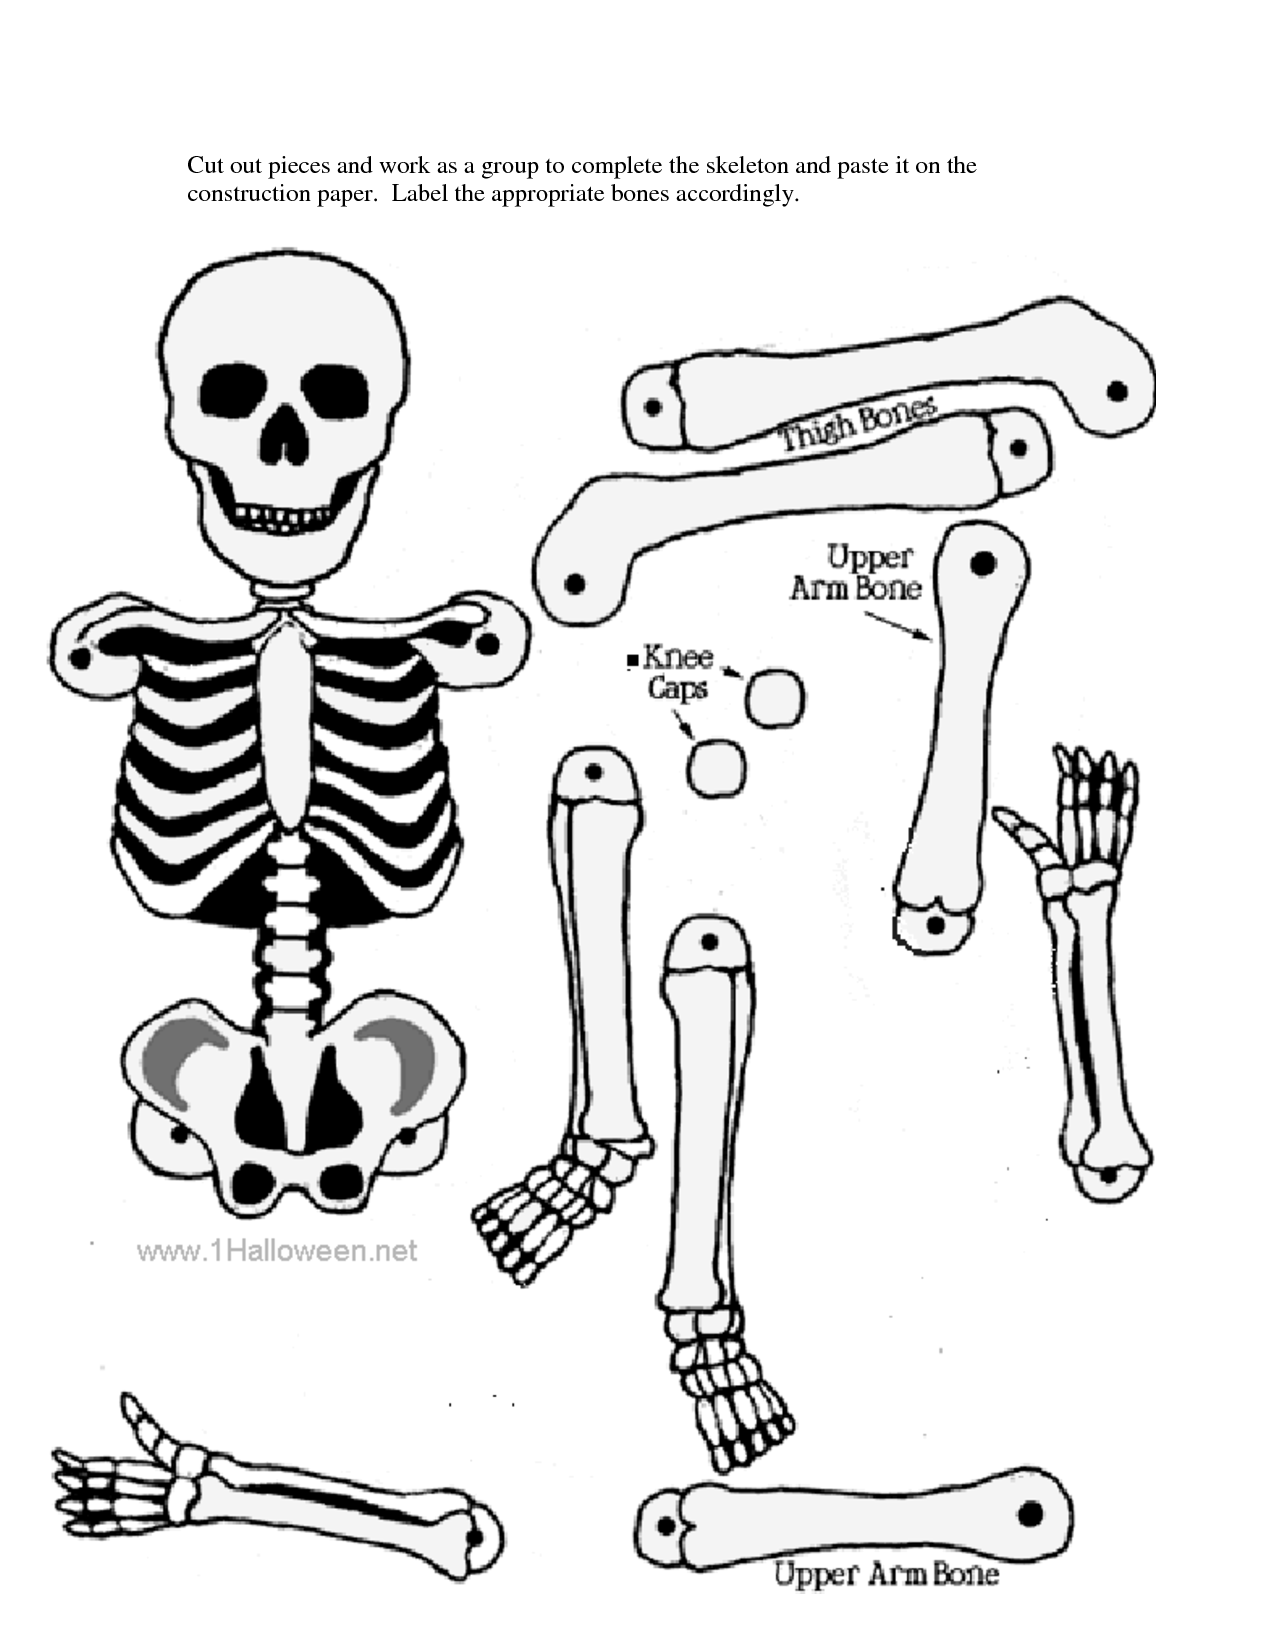 Skeletal System Without Label